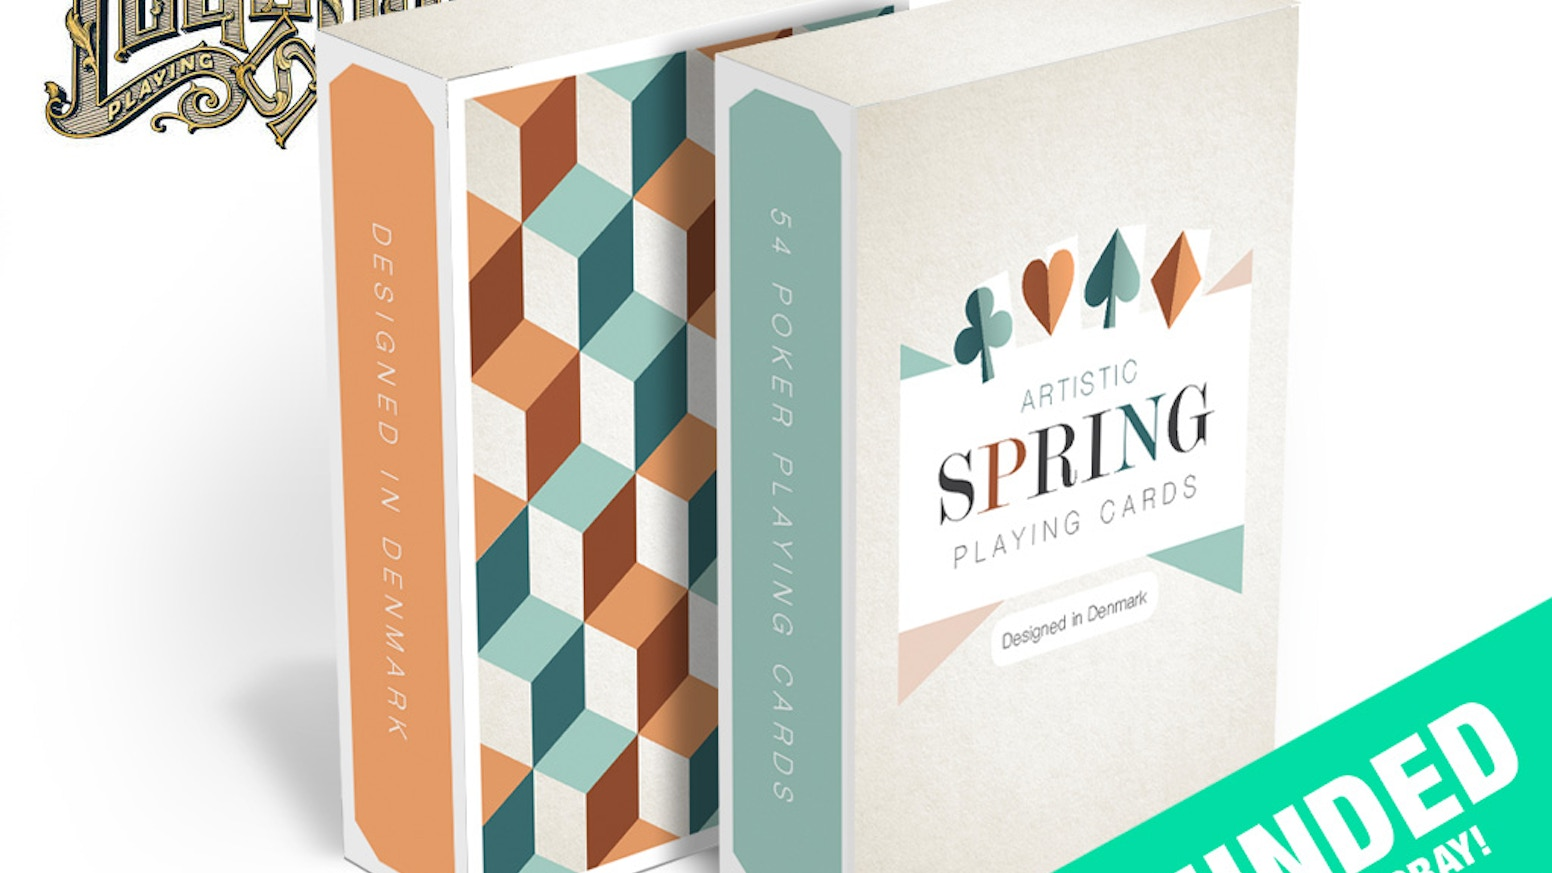 Artistic Spring Playing Cards by Nicolai Aarøe » Dominus is